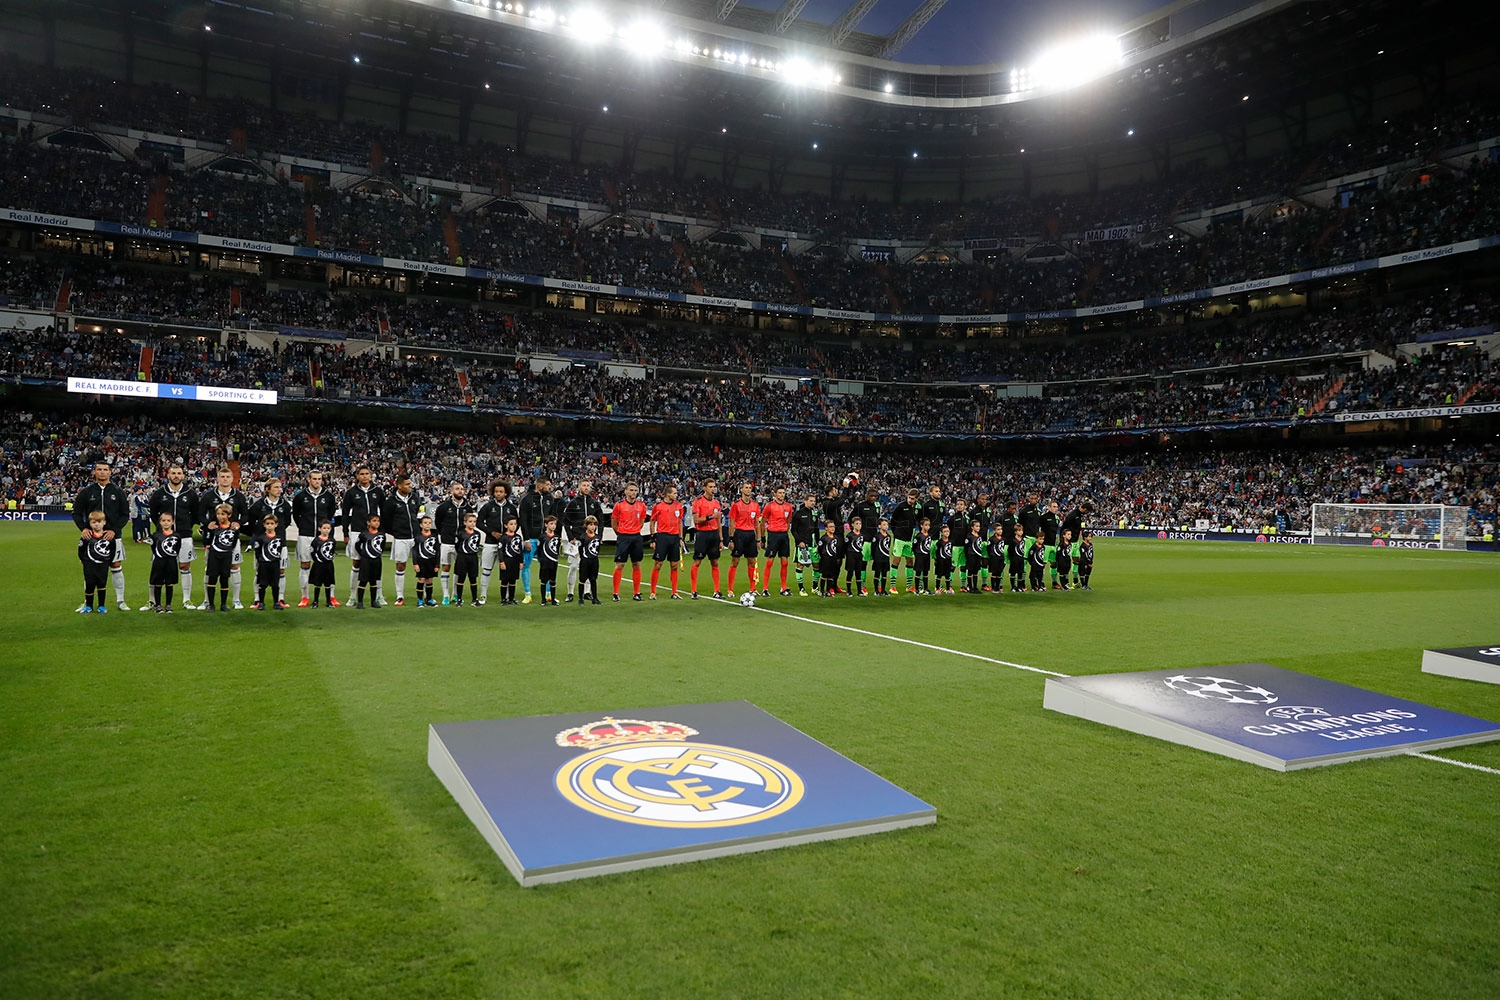 Real Madrid - Real Madrid - Sporting de Portugal - 14-09-2016